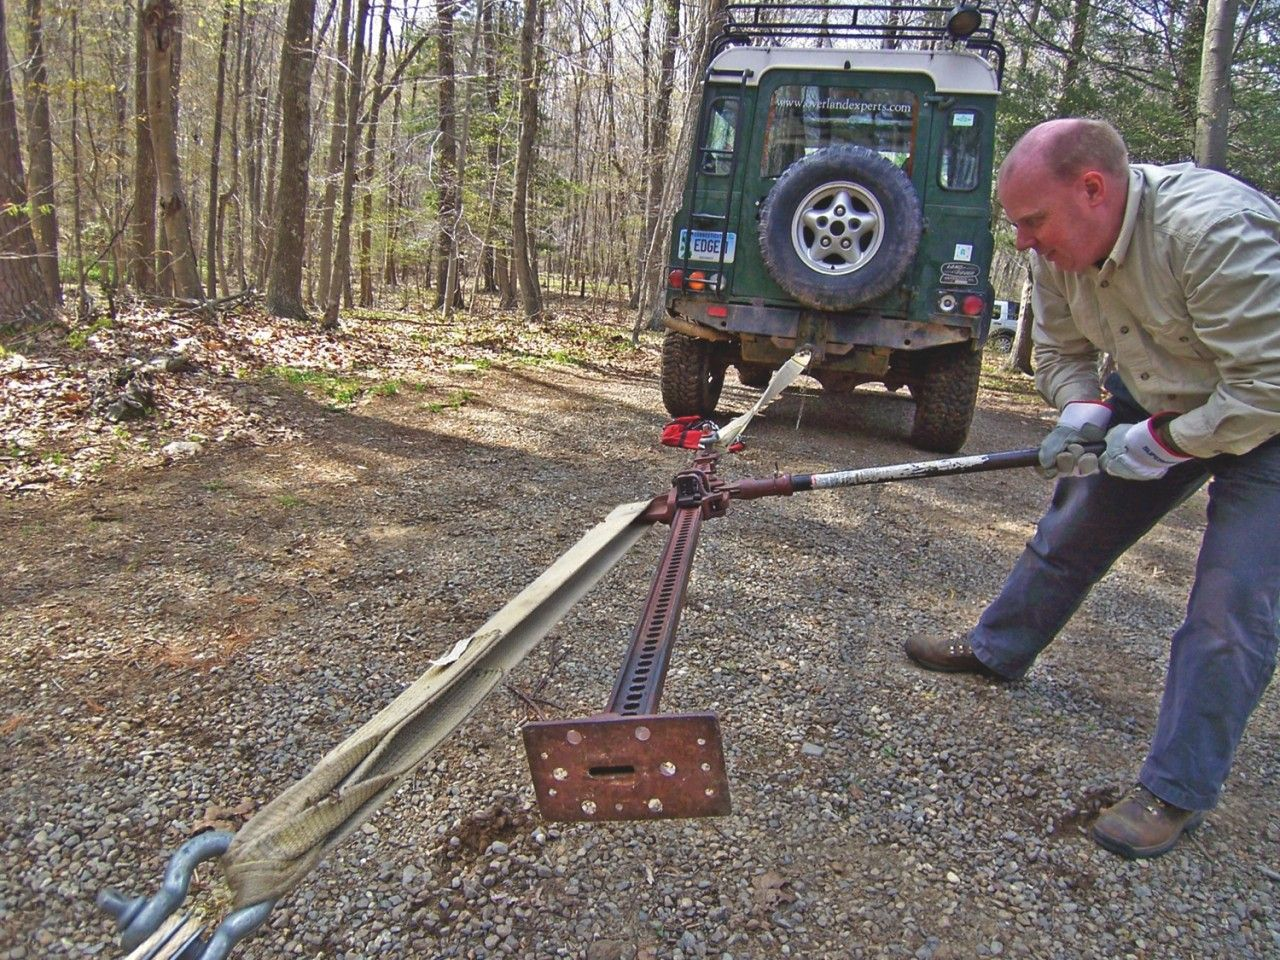 Jack of all trades trading overlanding